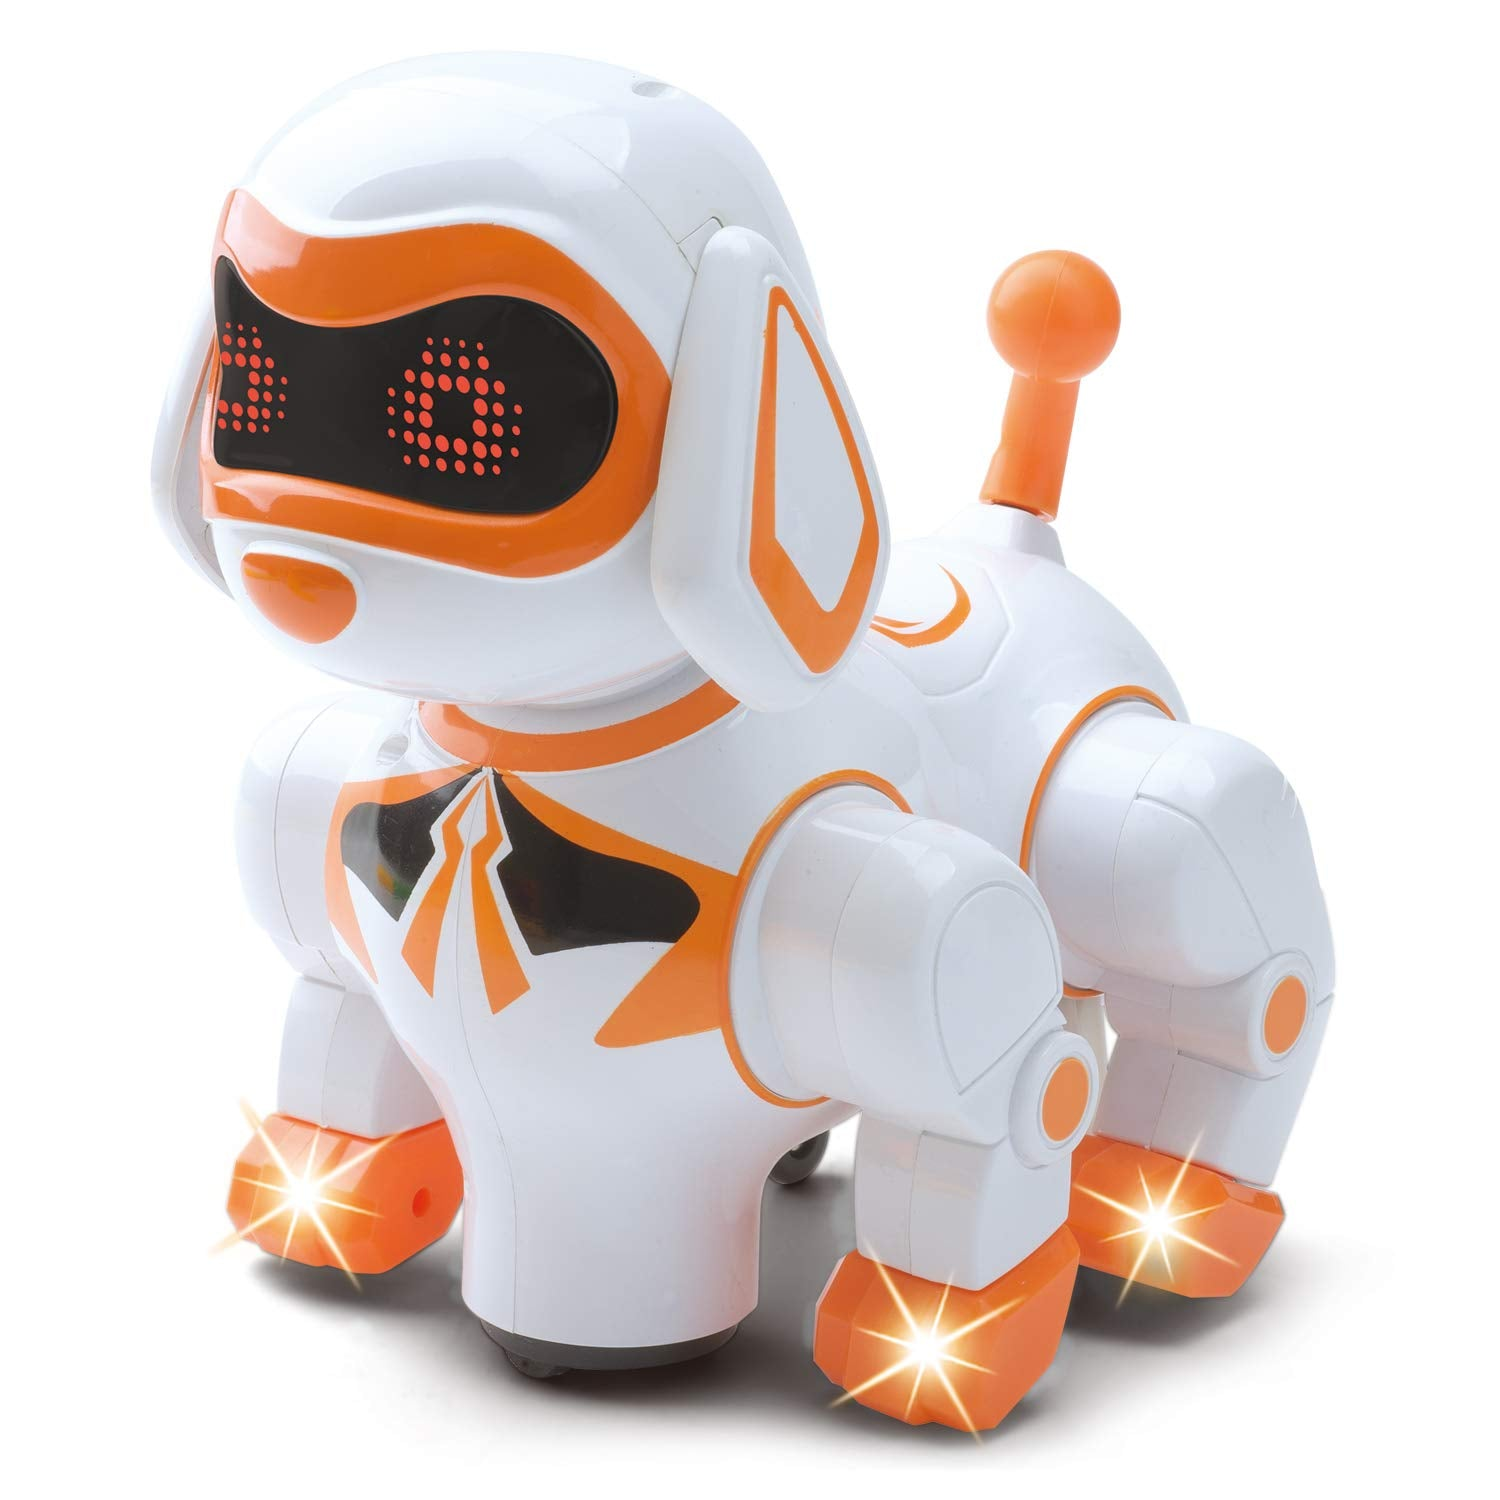 B/O Walking and Dancing Pet Robot Dog - Mechanical Dog Toy for Children, Supports Imaginative Play - Interactive Pet Robot Walks, Dances, Moves, Plays Sound Effects, Lights Up - Children Age 3+ Years - wiihuu